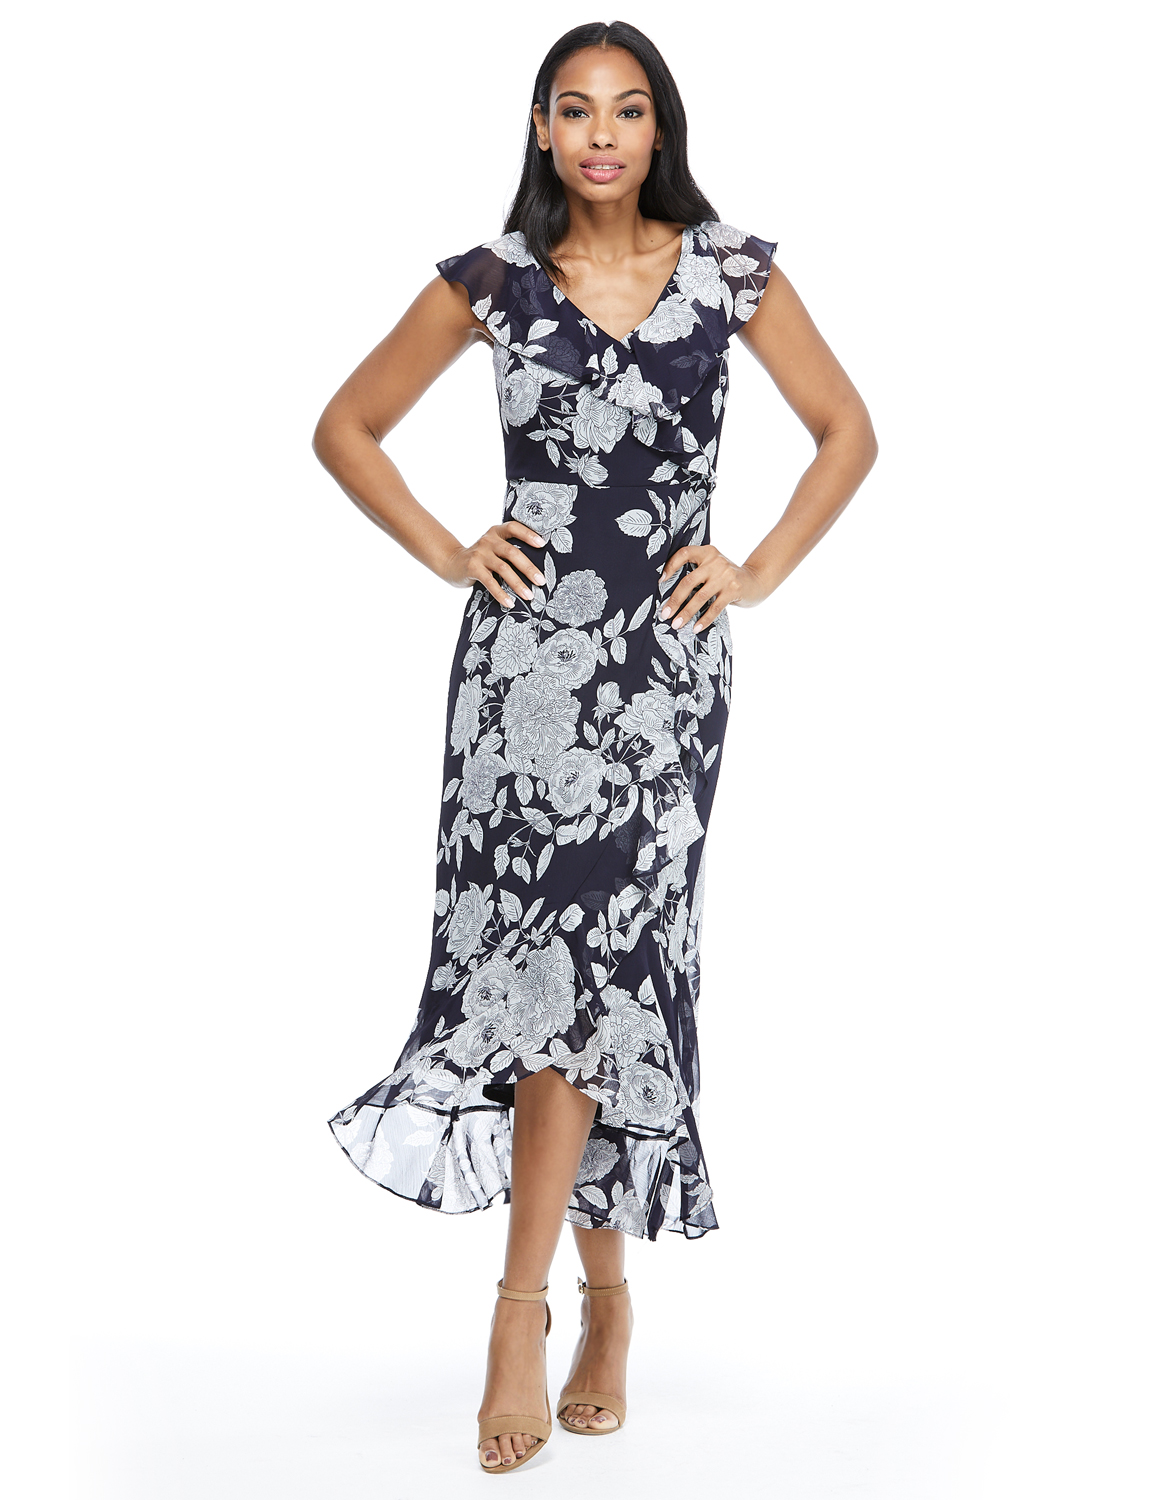 Floral Flutter Sleeve Yoryu Chiffon Wrap Dress - Black/White - Front